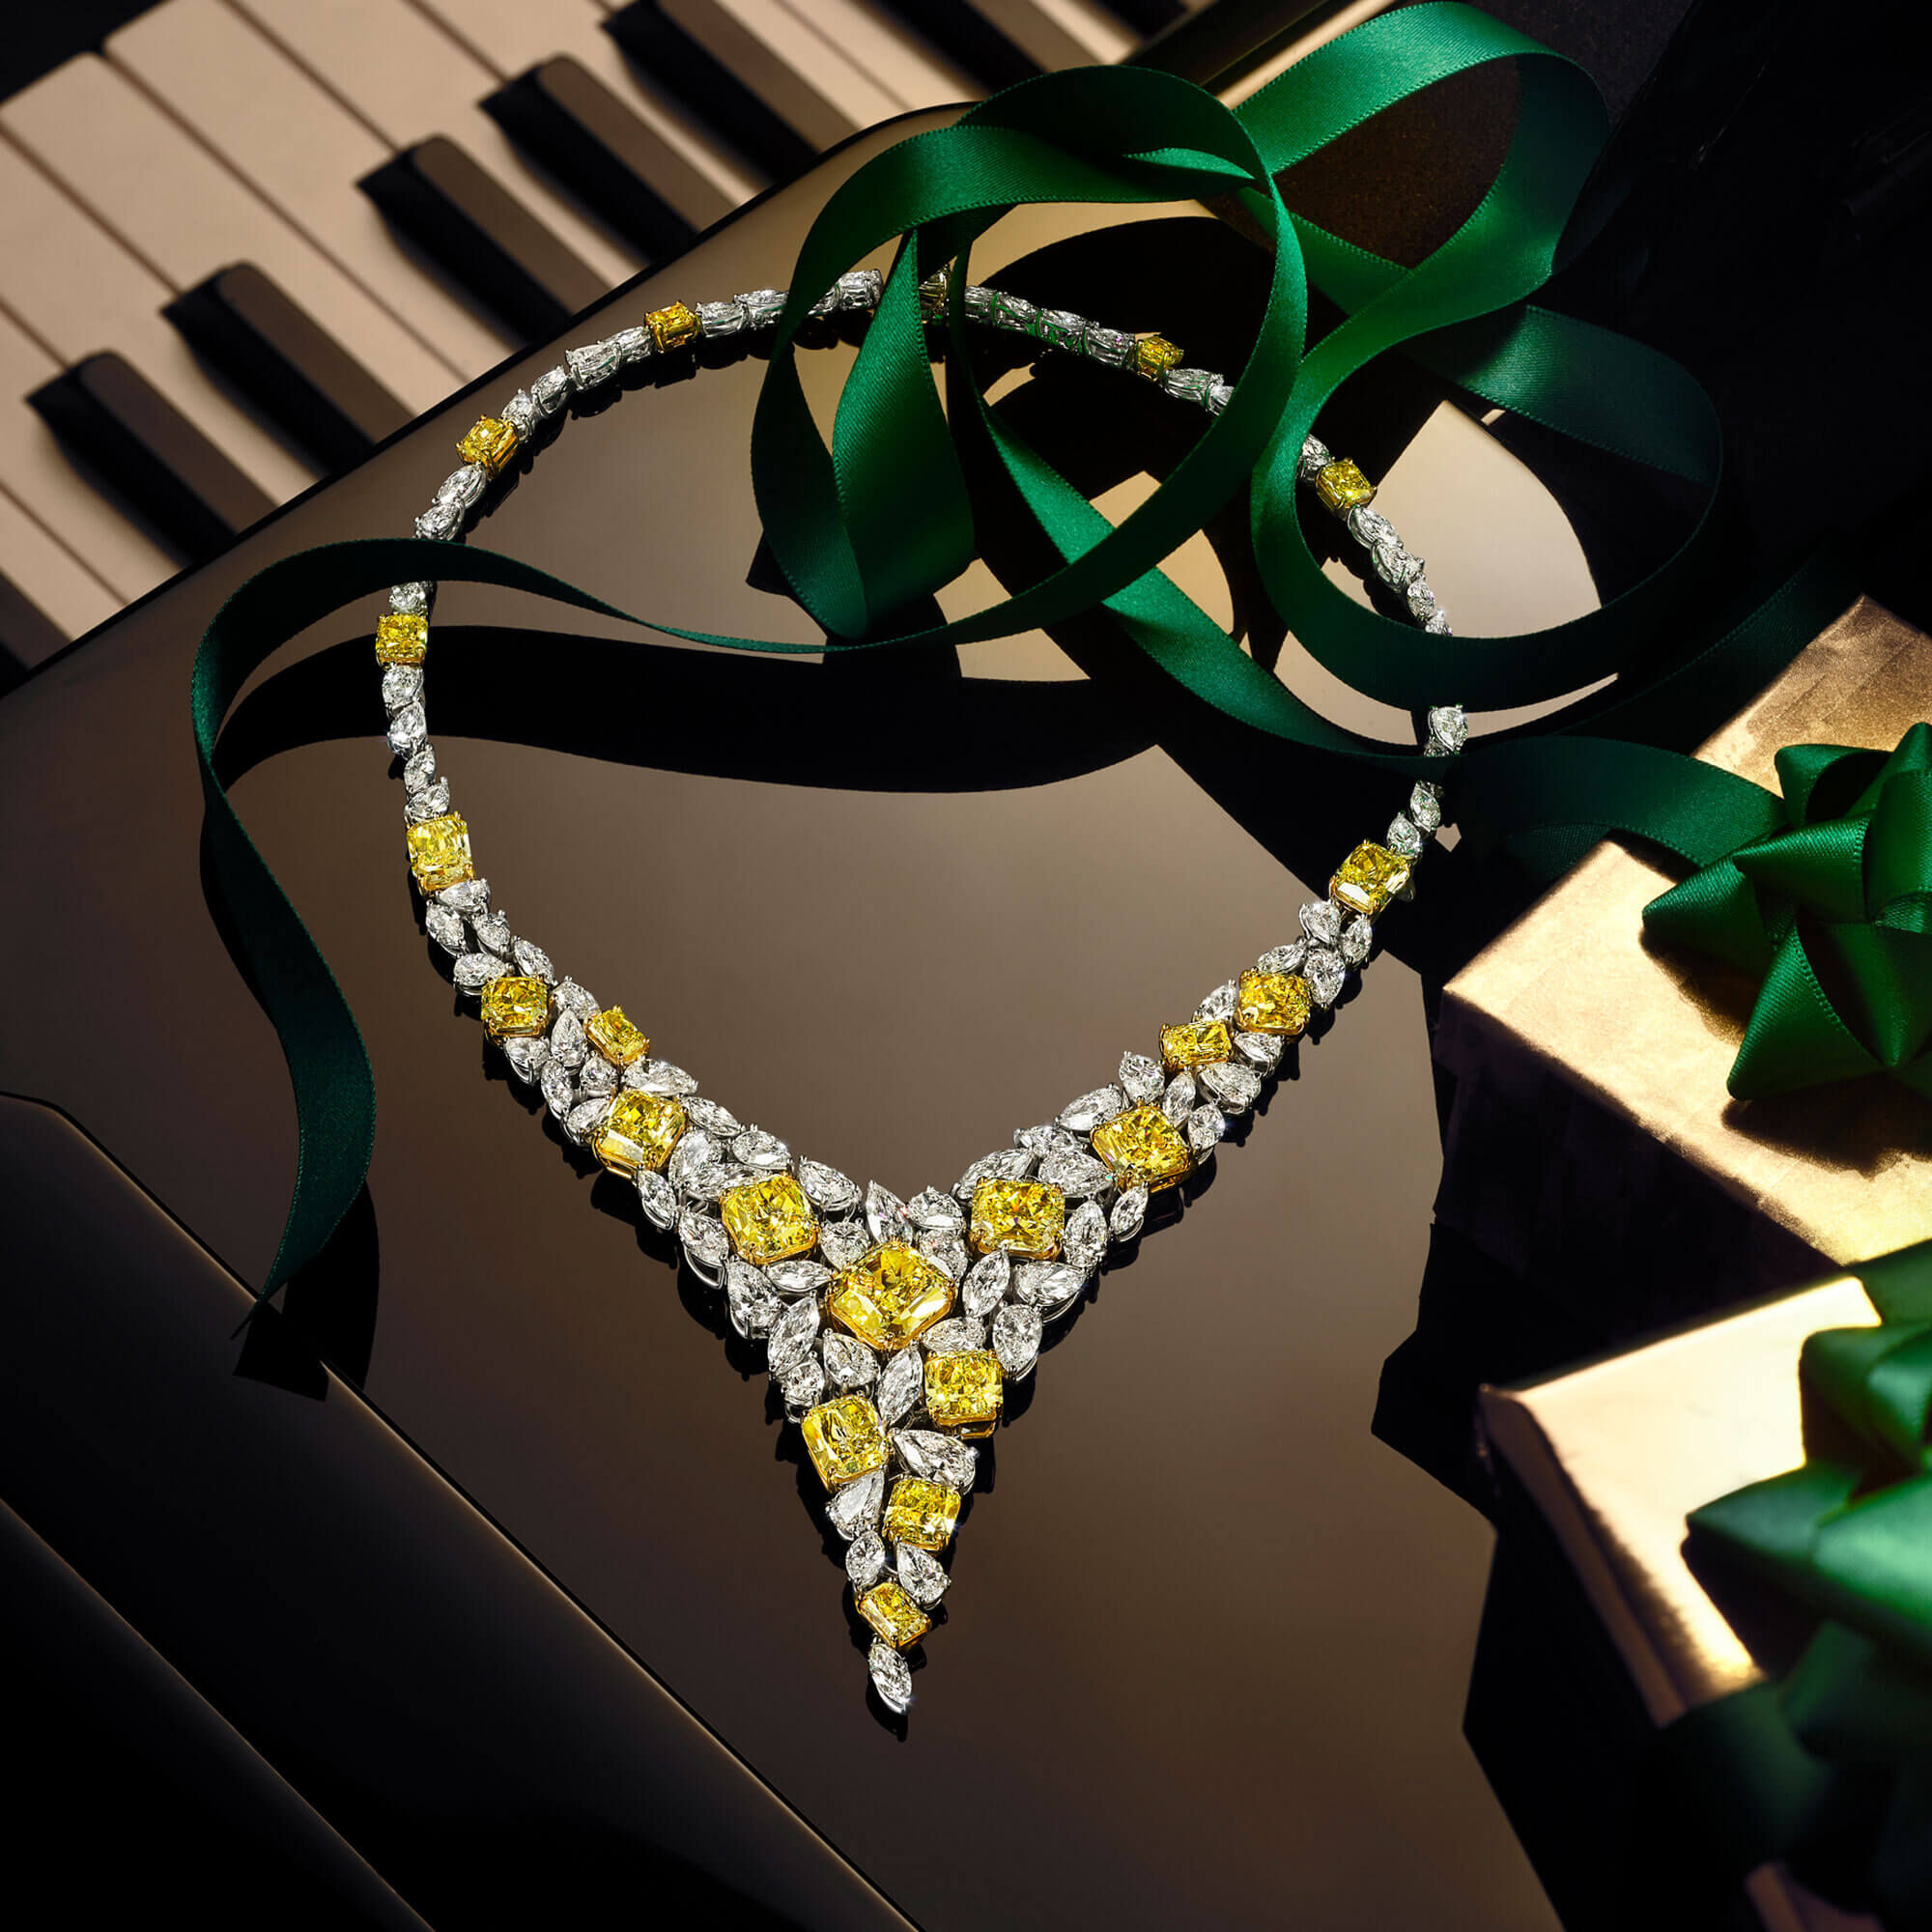 Graff yellow and white diamond high jewellery necklace on a piano next to holiday season christmas gift boxes